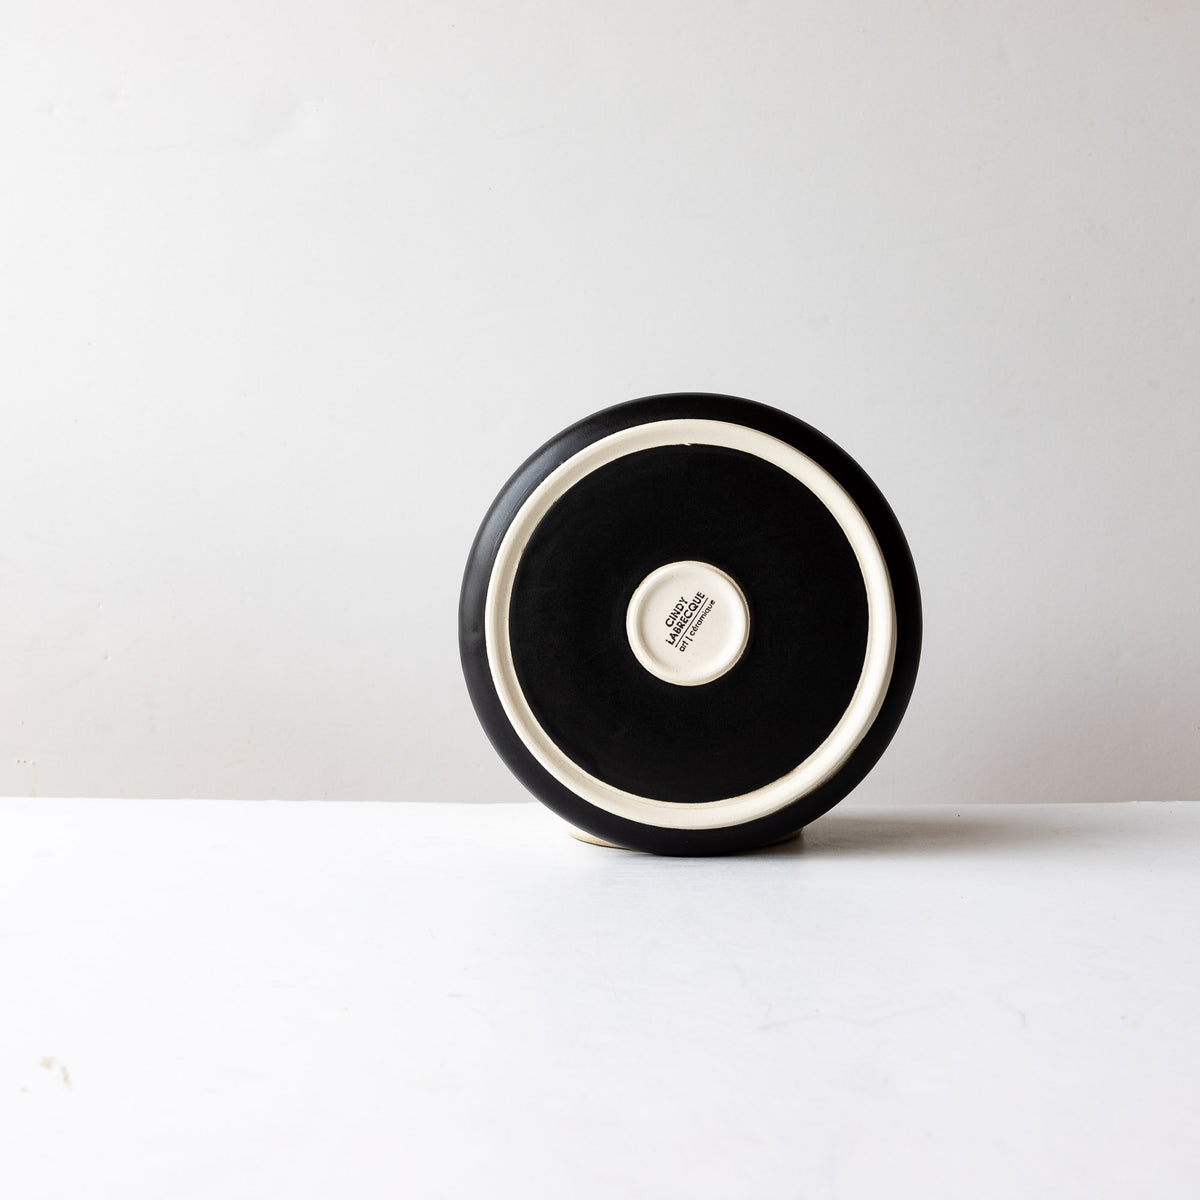 Rear View - Black Satin Glaze Hand Thrown Small Porcelain Plate - Sold by Chic & Basta